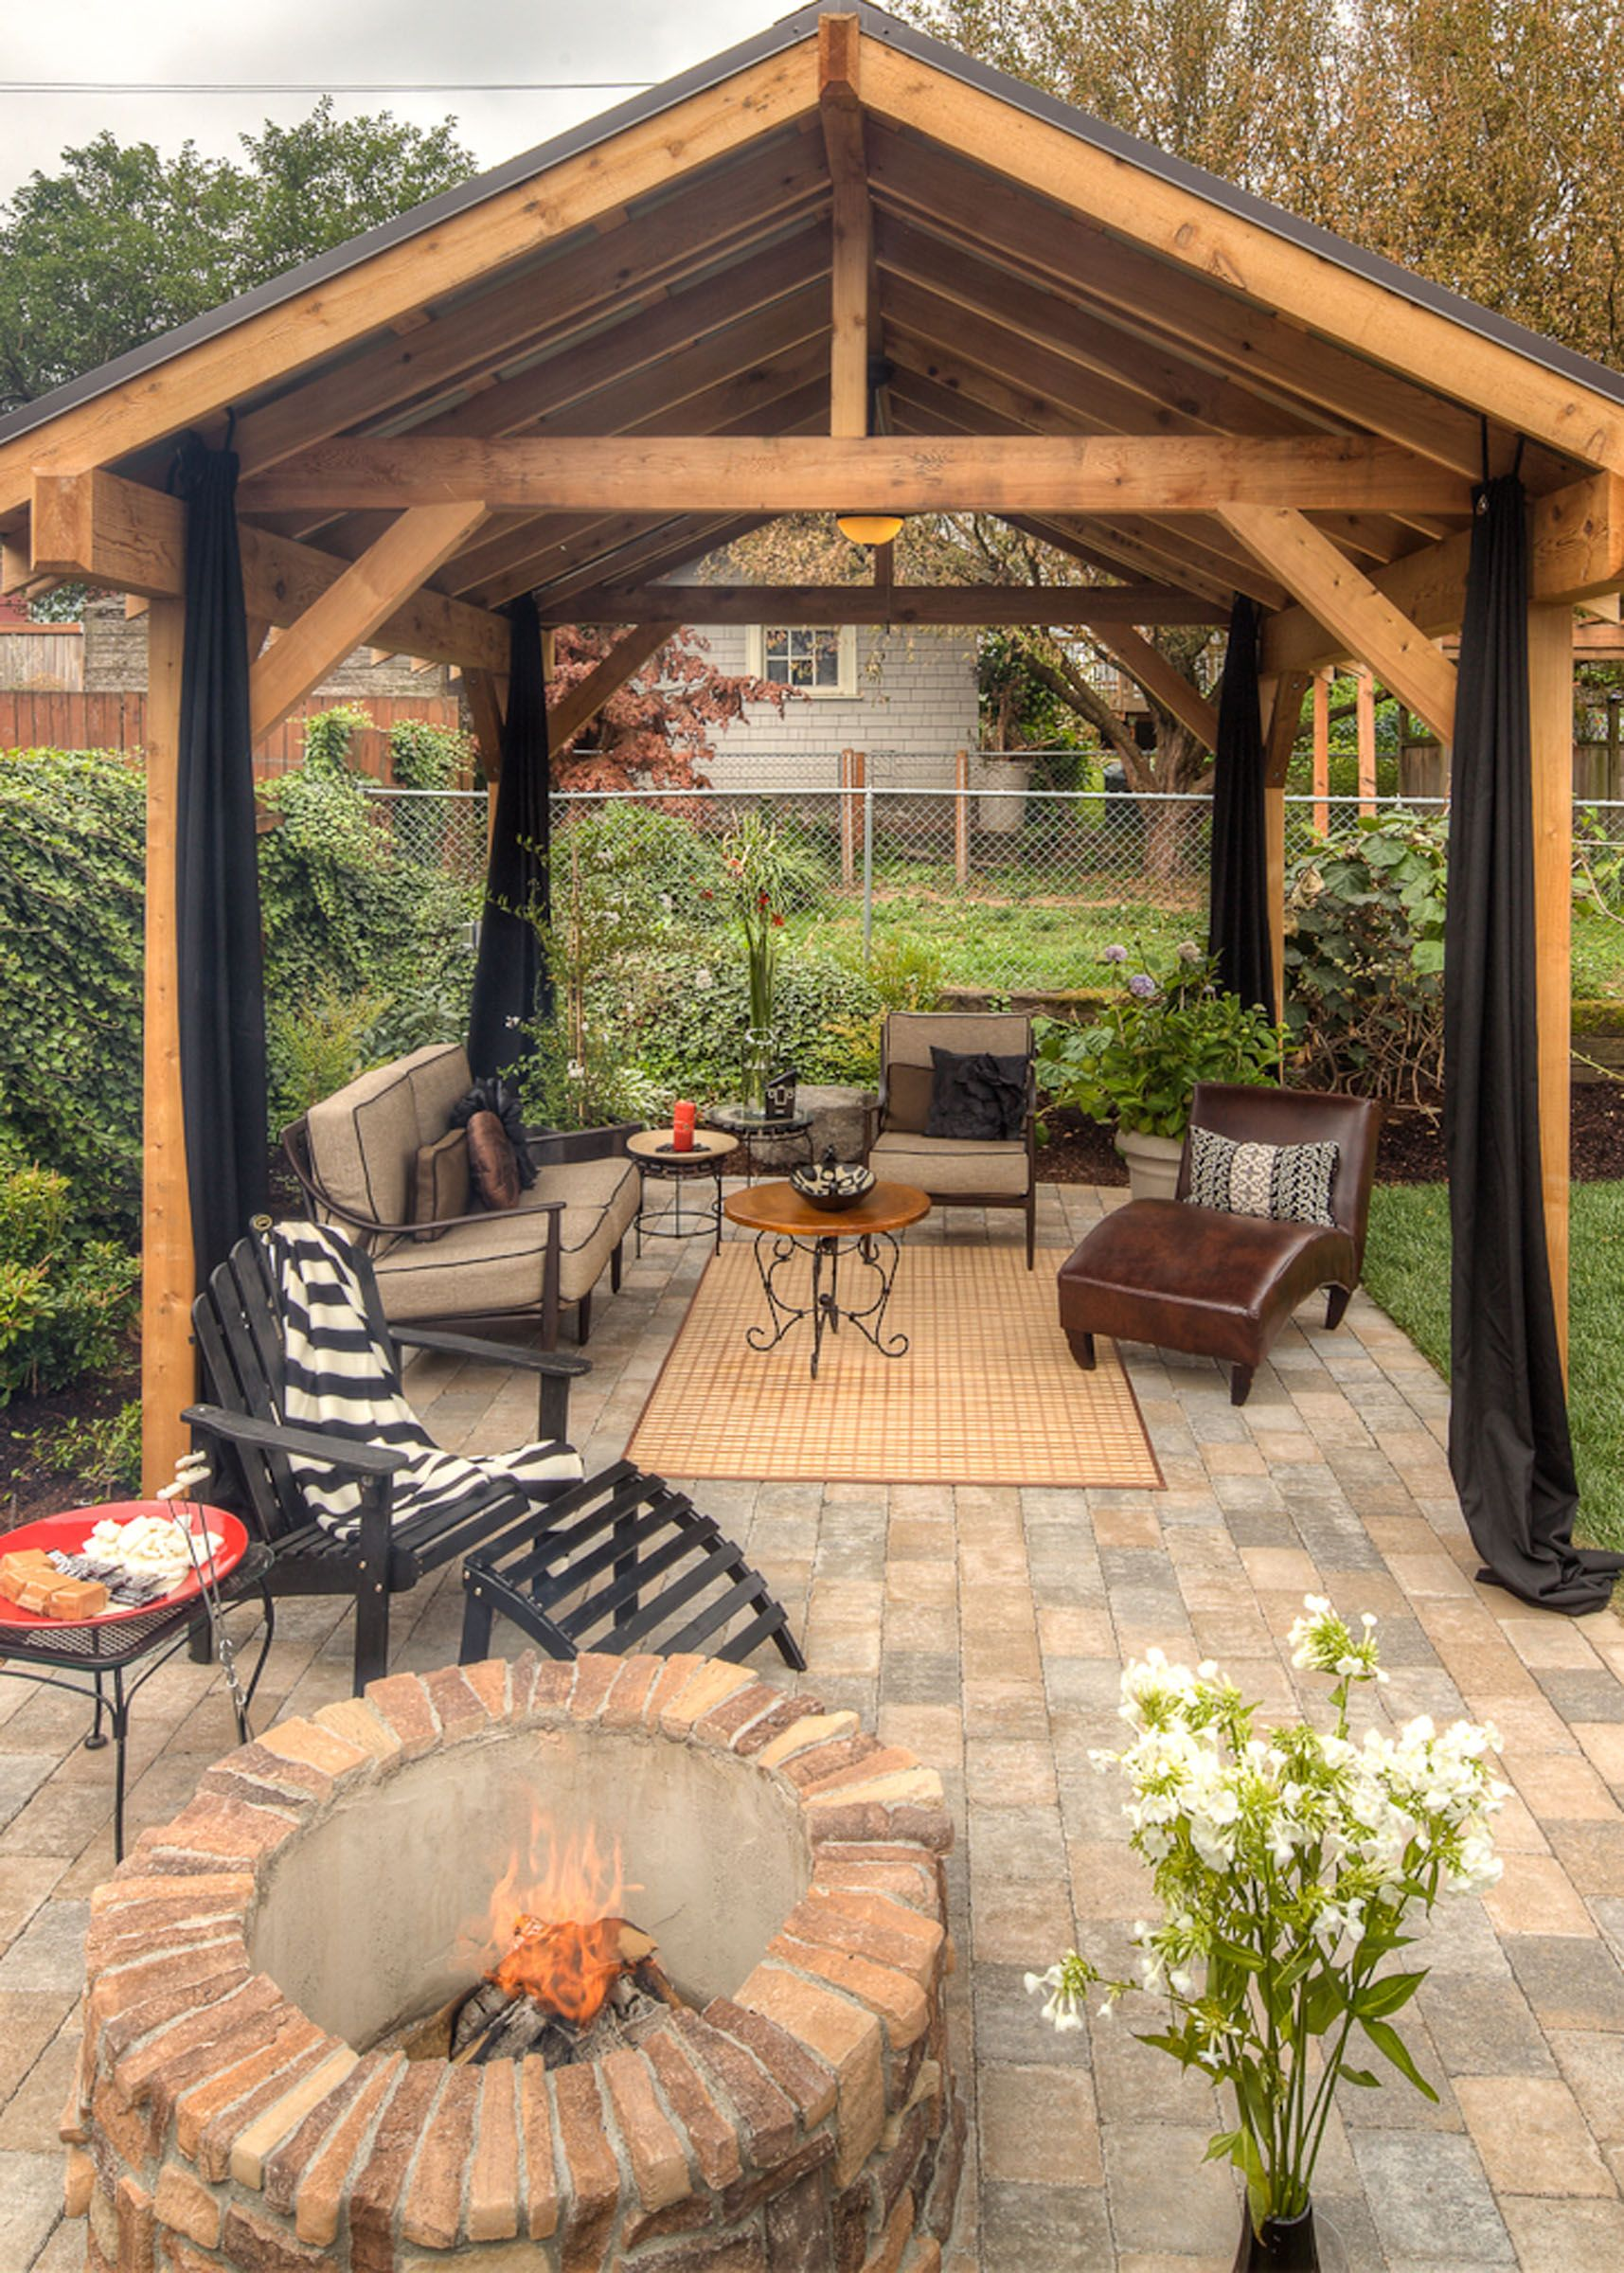 Backyard Gazebo pinparadise restored on exteriors/outdoor living | pinterest